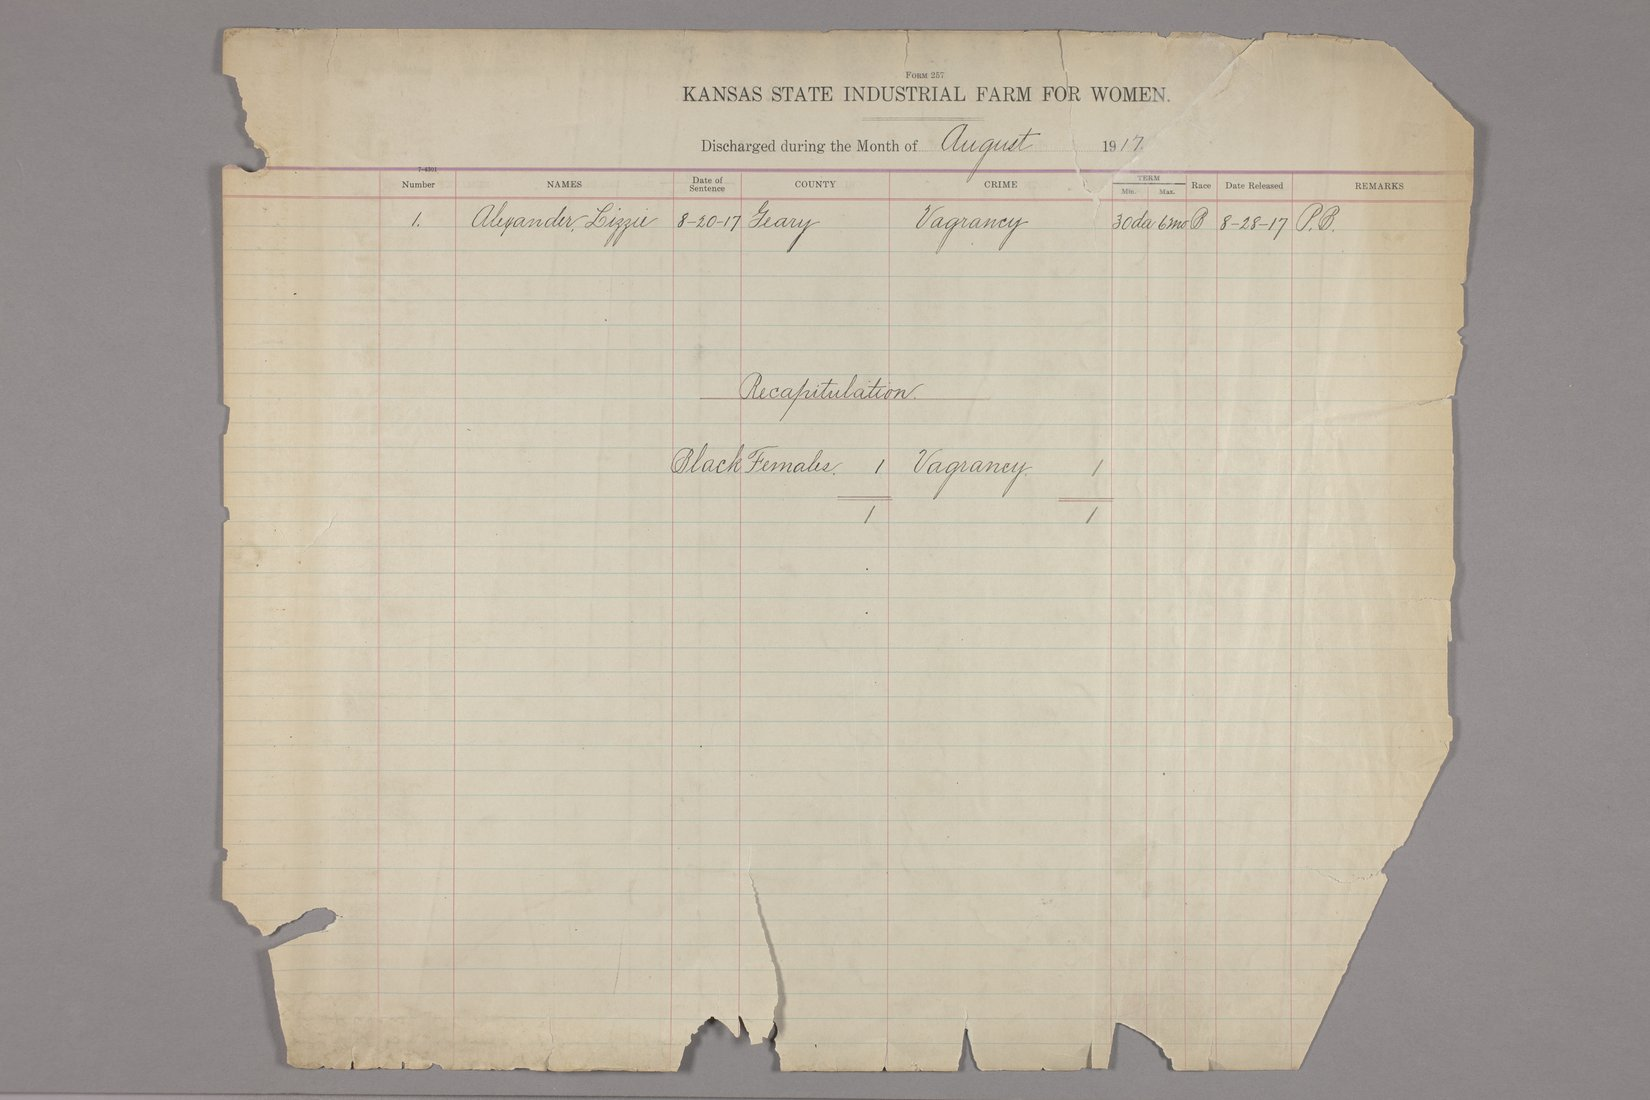 Inmates discharged register, Kansas State Industrial Farm for Women - August, 1917 & recapitulation page